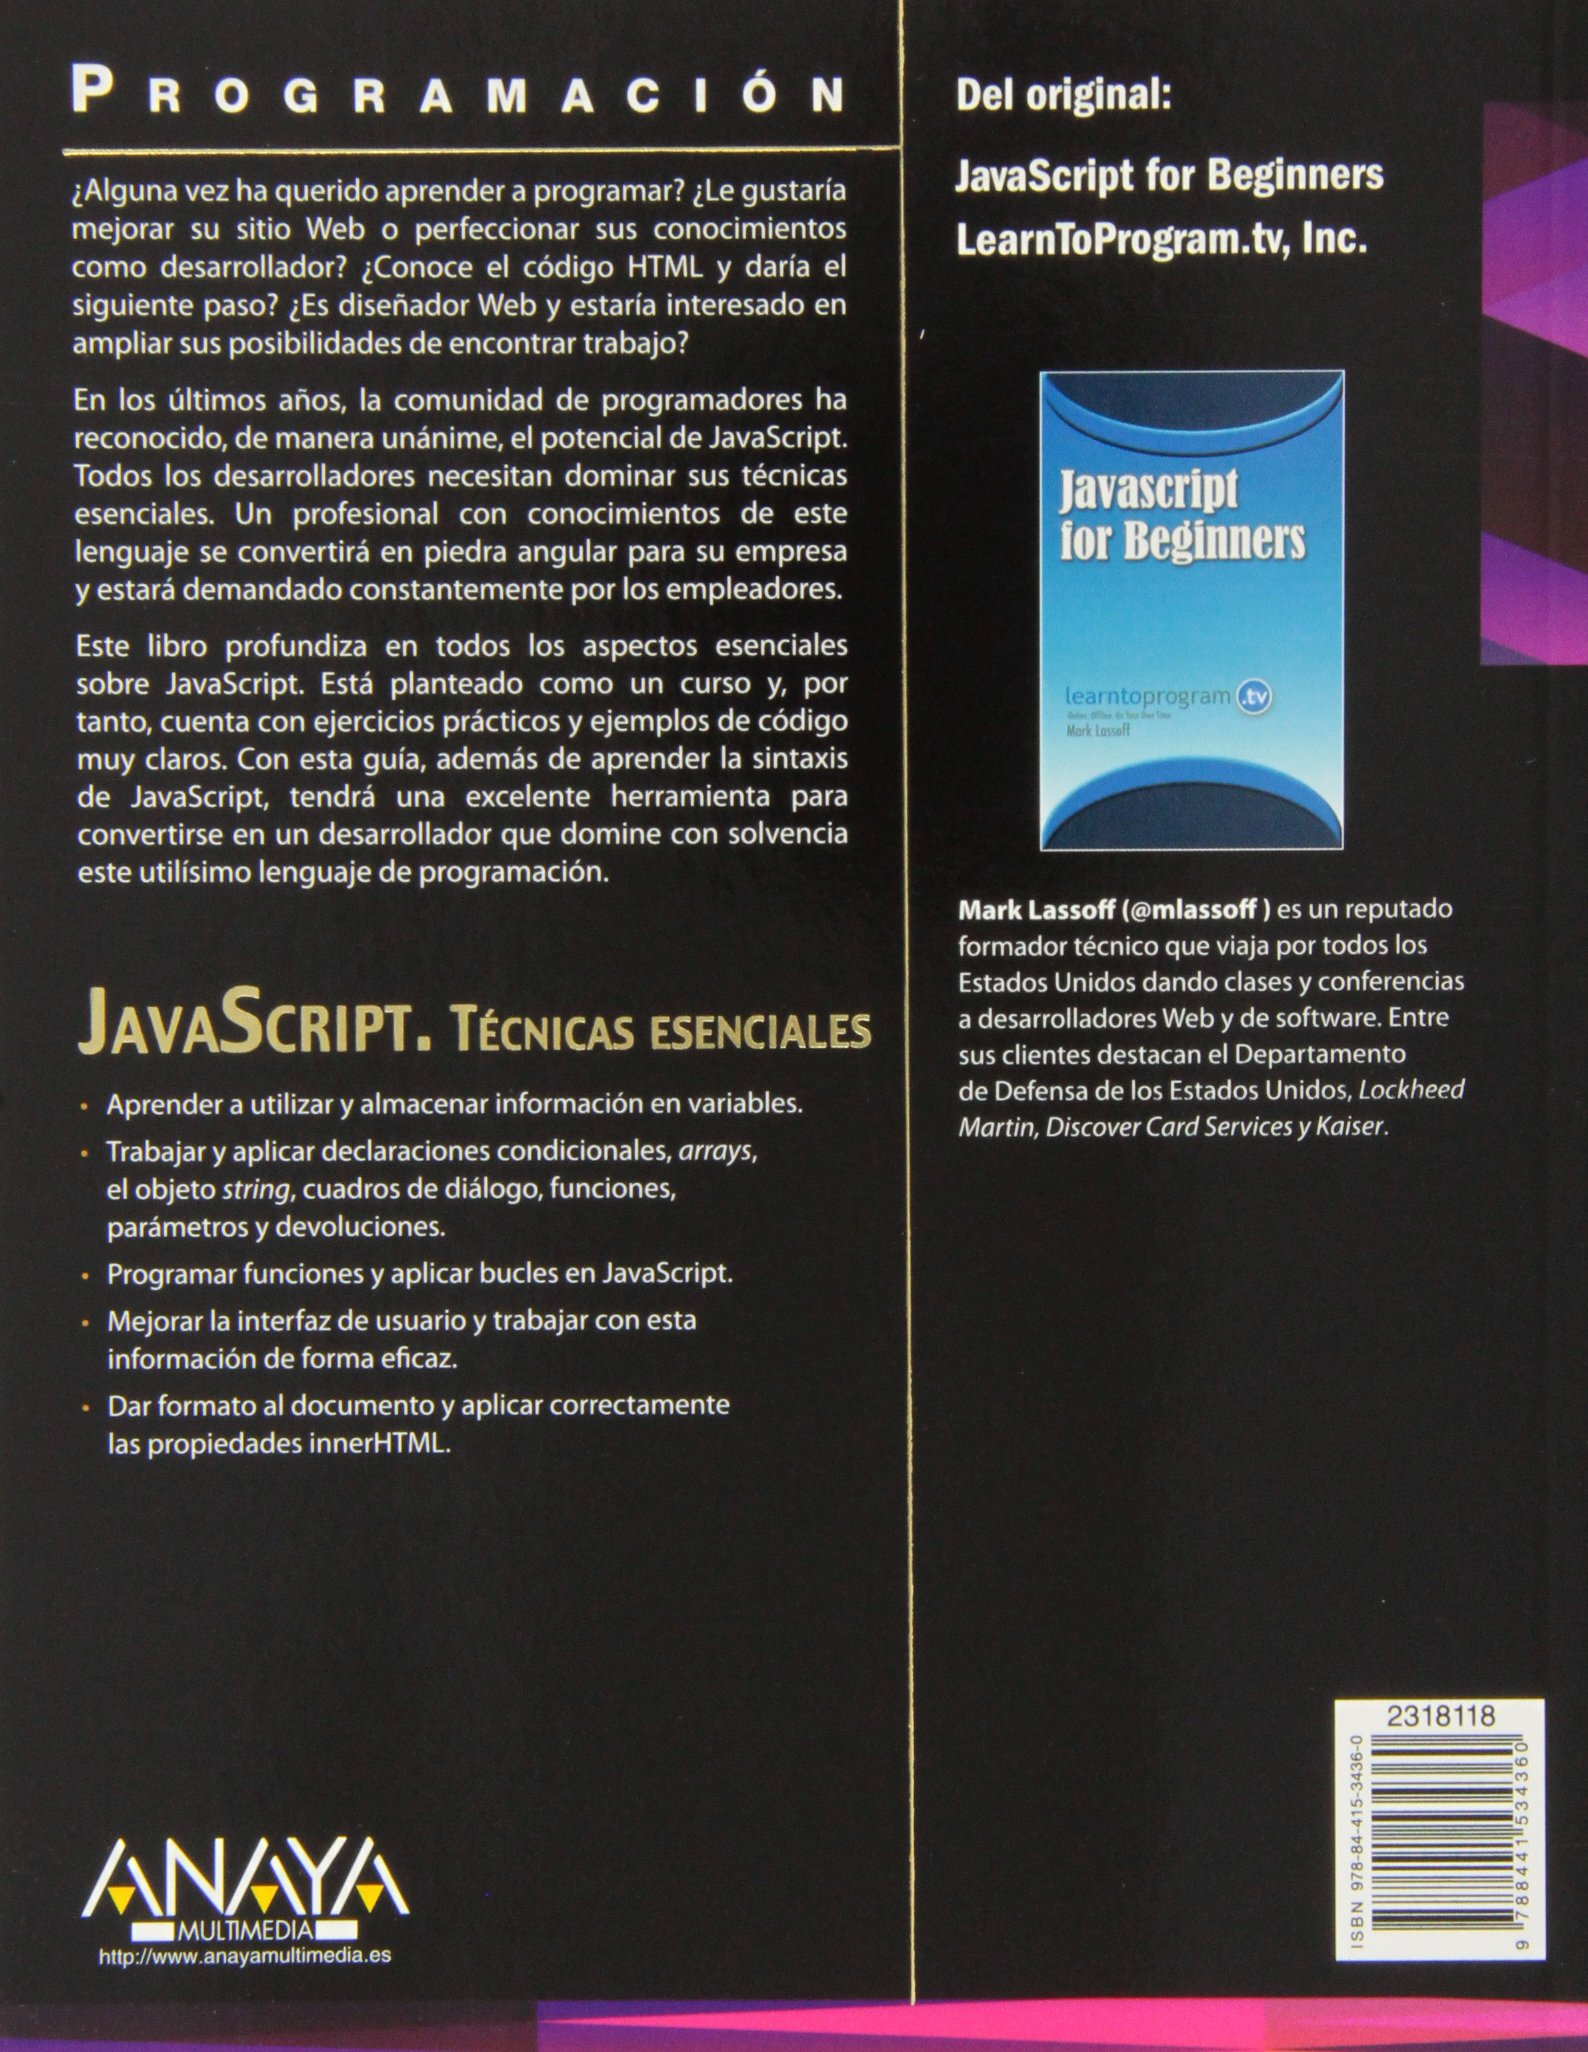 JavaScript. Técnicas esenciales (Programación): Amazon.es: Mark Lassoff: Libros